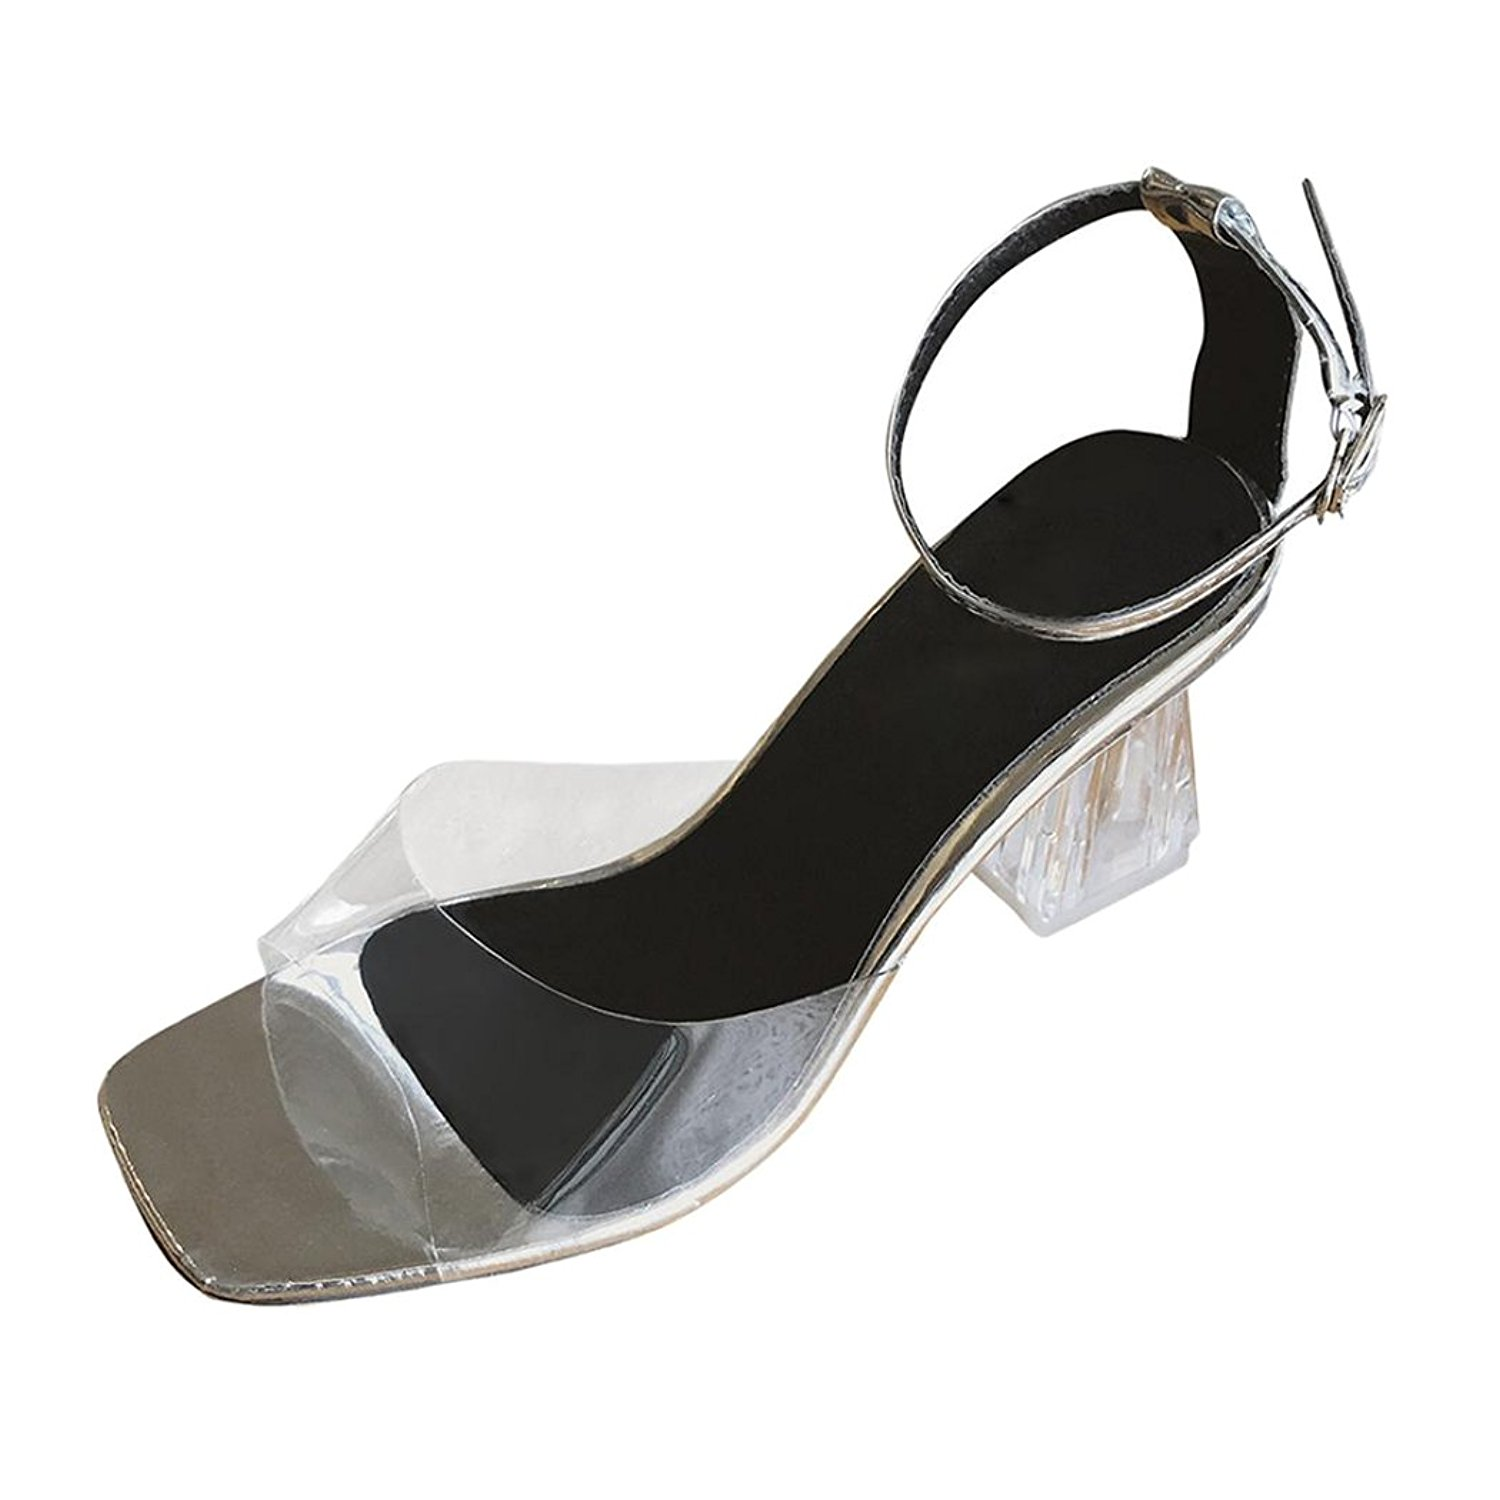 9921ea2b39ee4 Inkach Womens Wedges Sandals - Ladies Summer Sandals Chunky High Heels  Sandals - Transparent Ankle Wrap Buckle Shoes